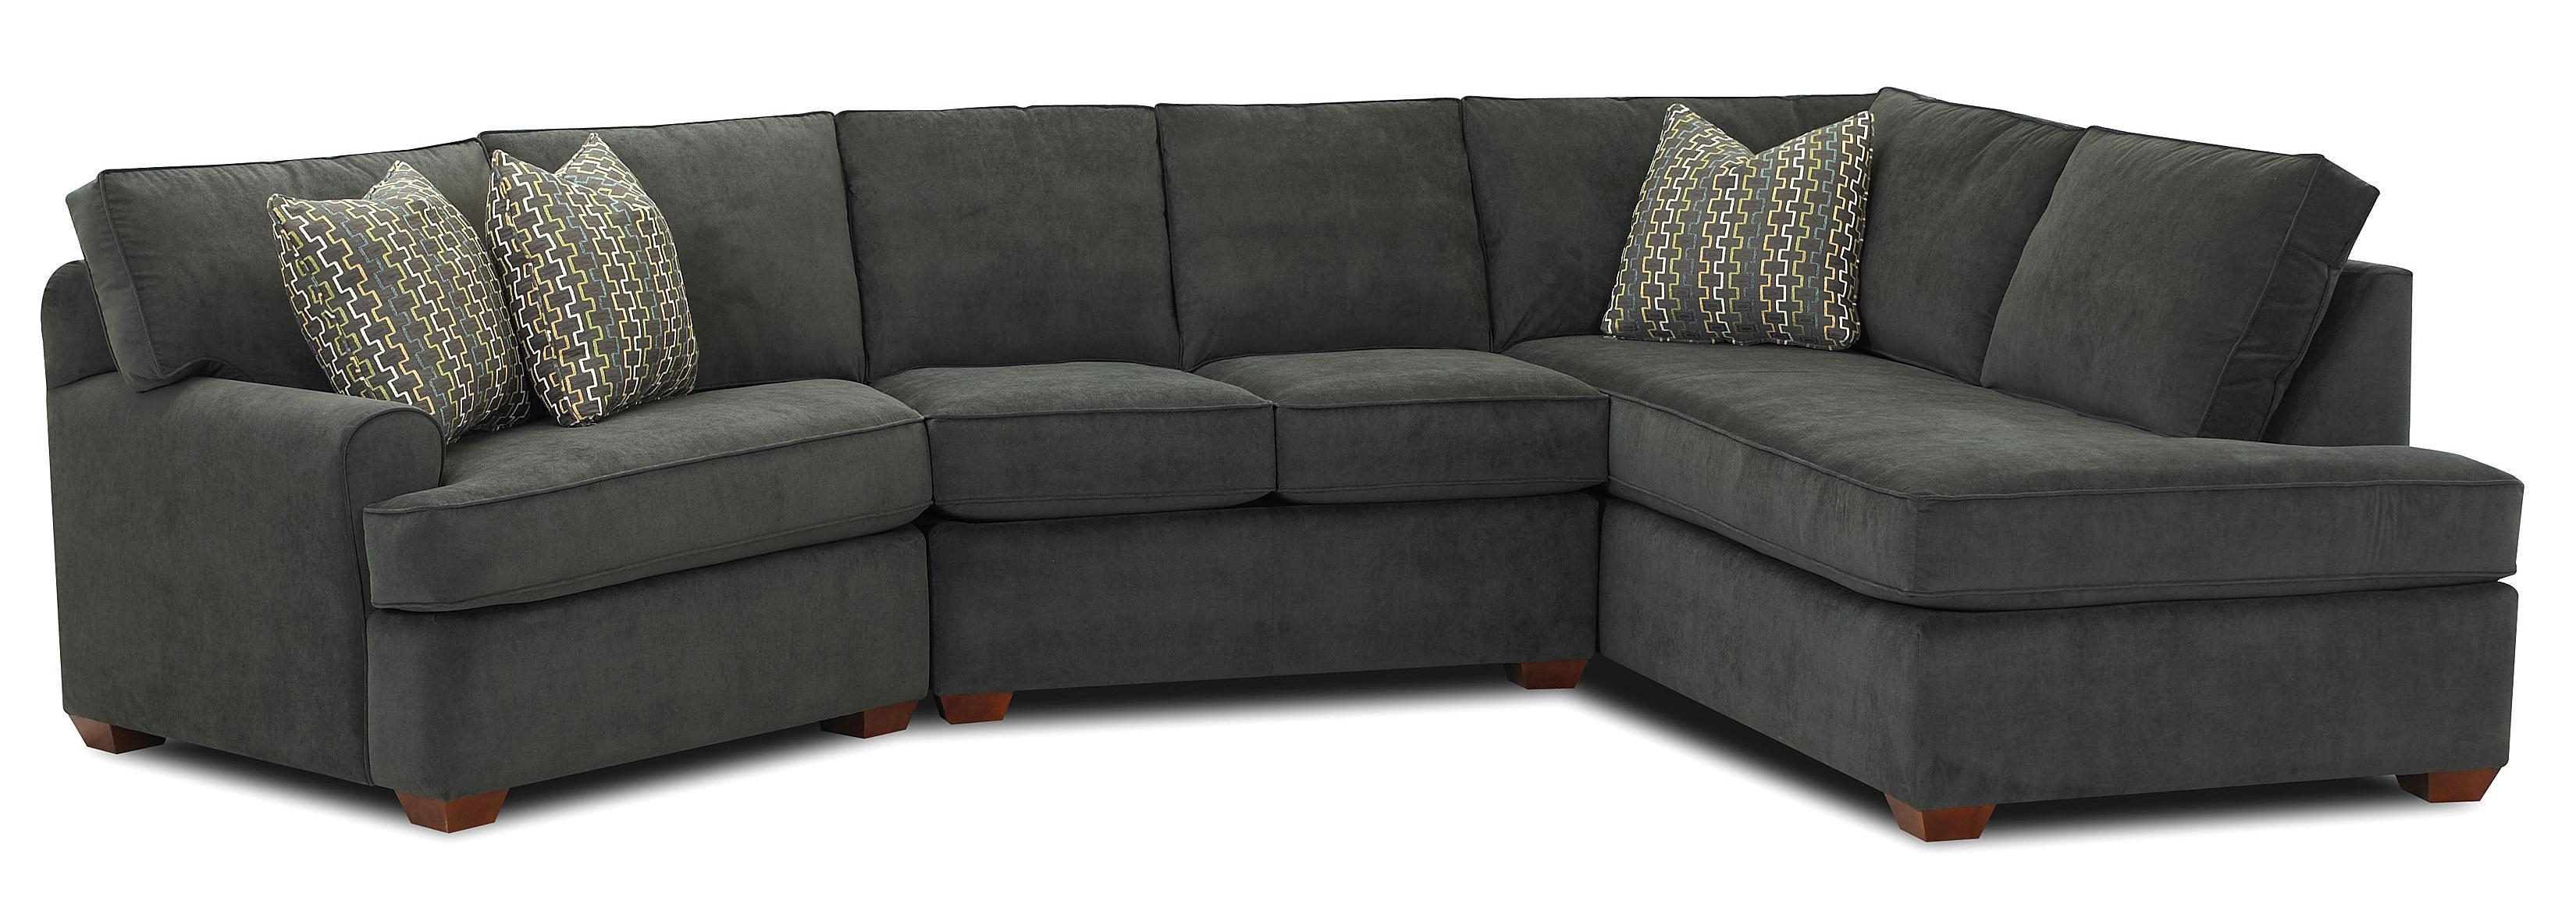 Furniture: Modern Chaise Sectional With Classic Comfortable Design For Sofas And Sectionals (Image 12 of 20)